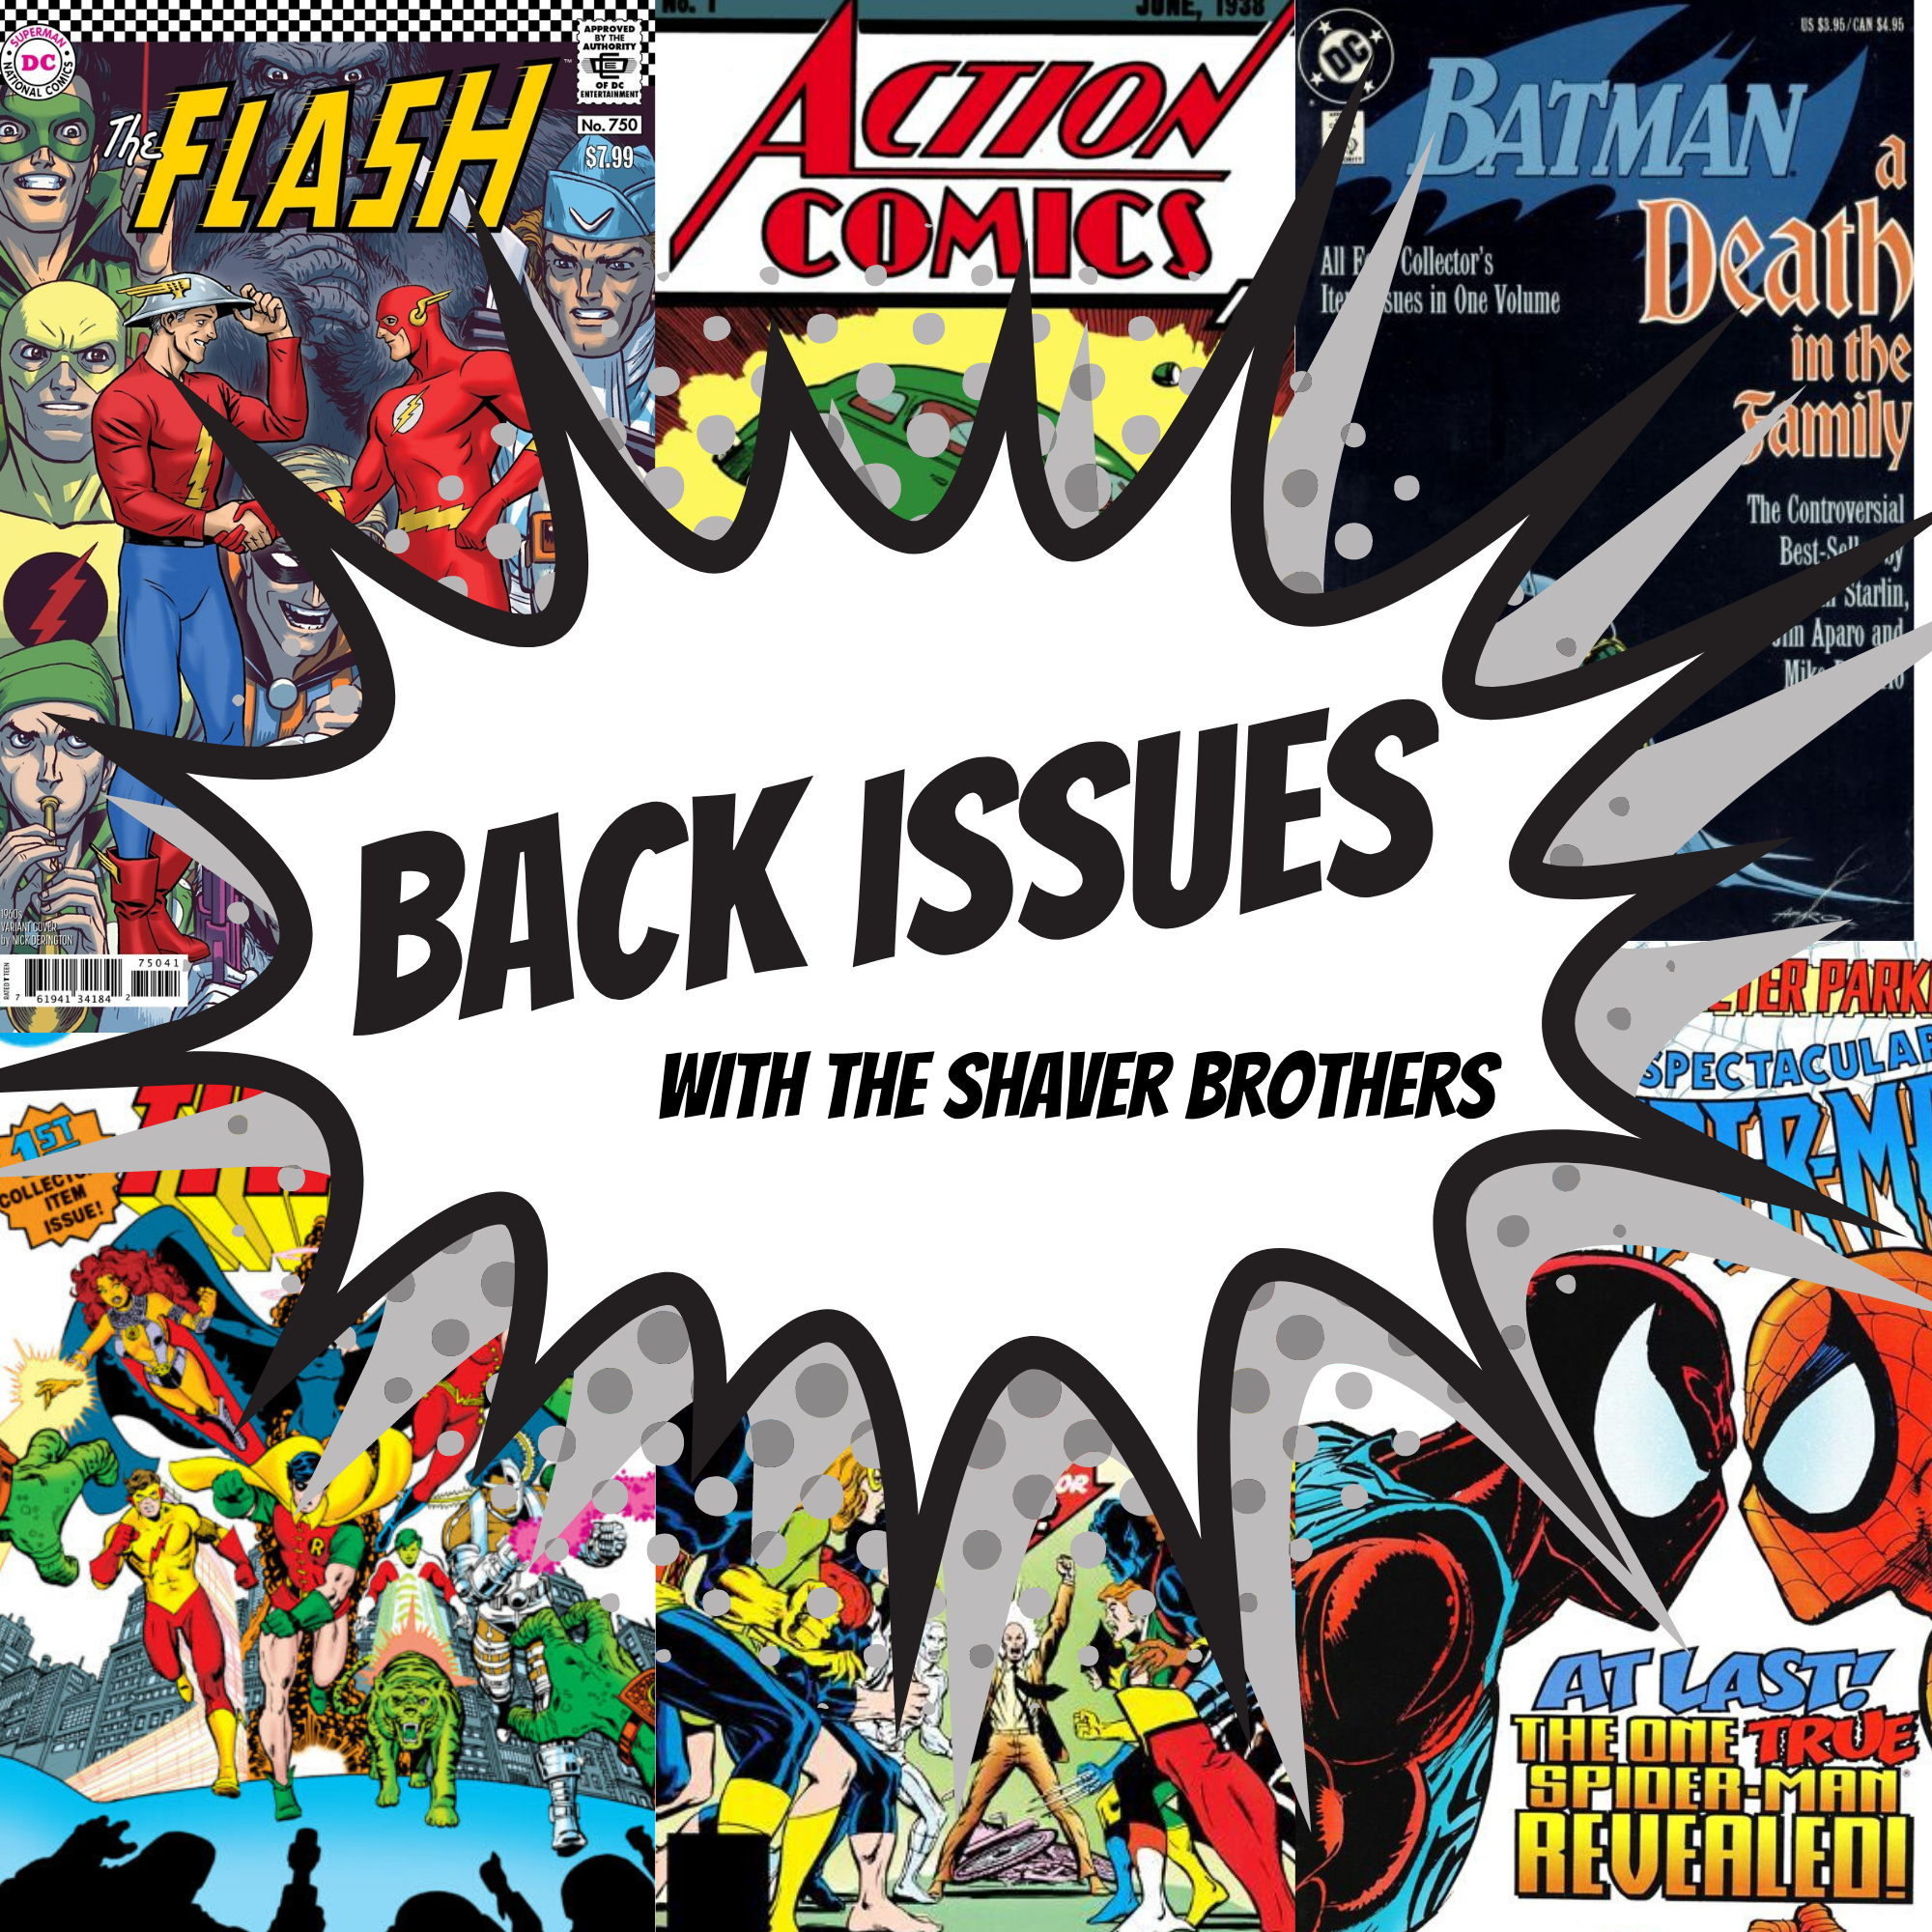 Back Issues - The Greatest Comic Book Stories Ever Told